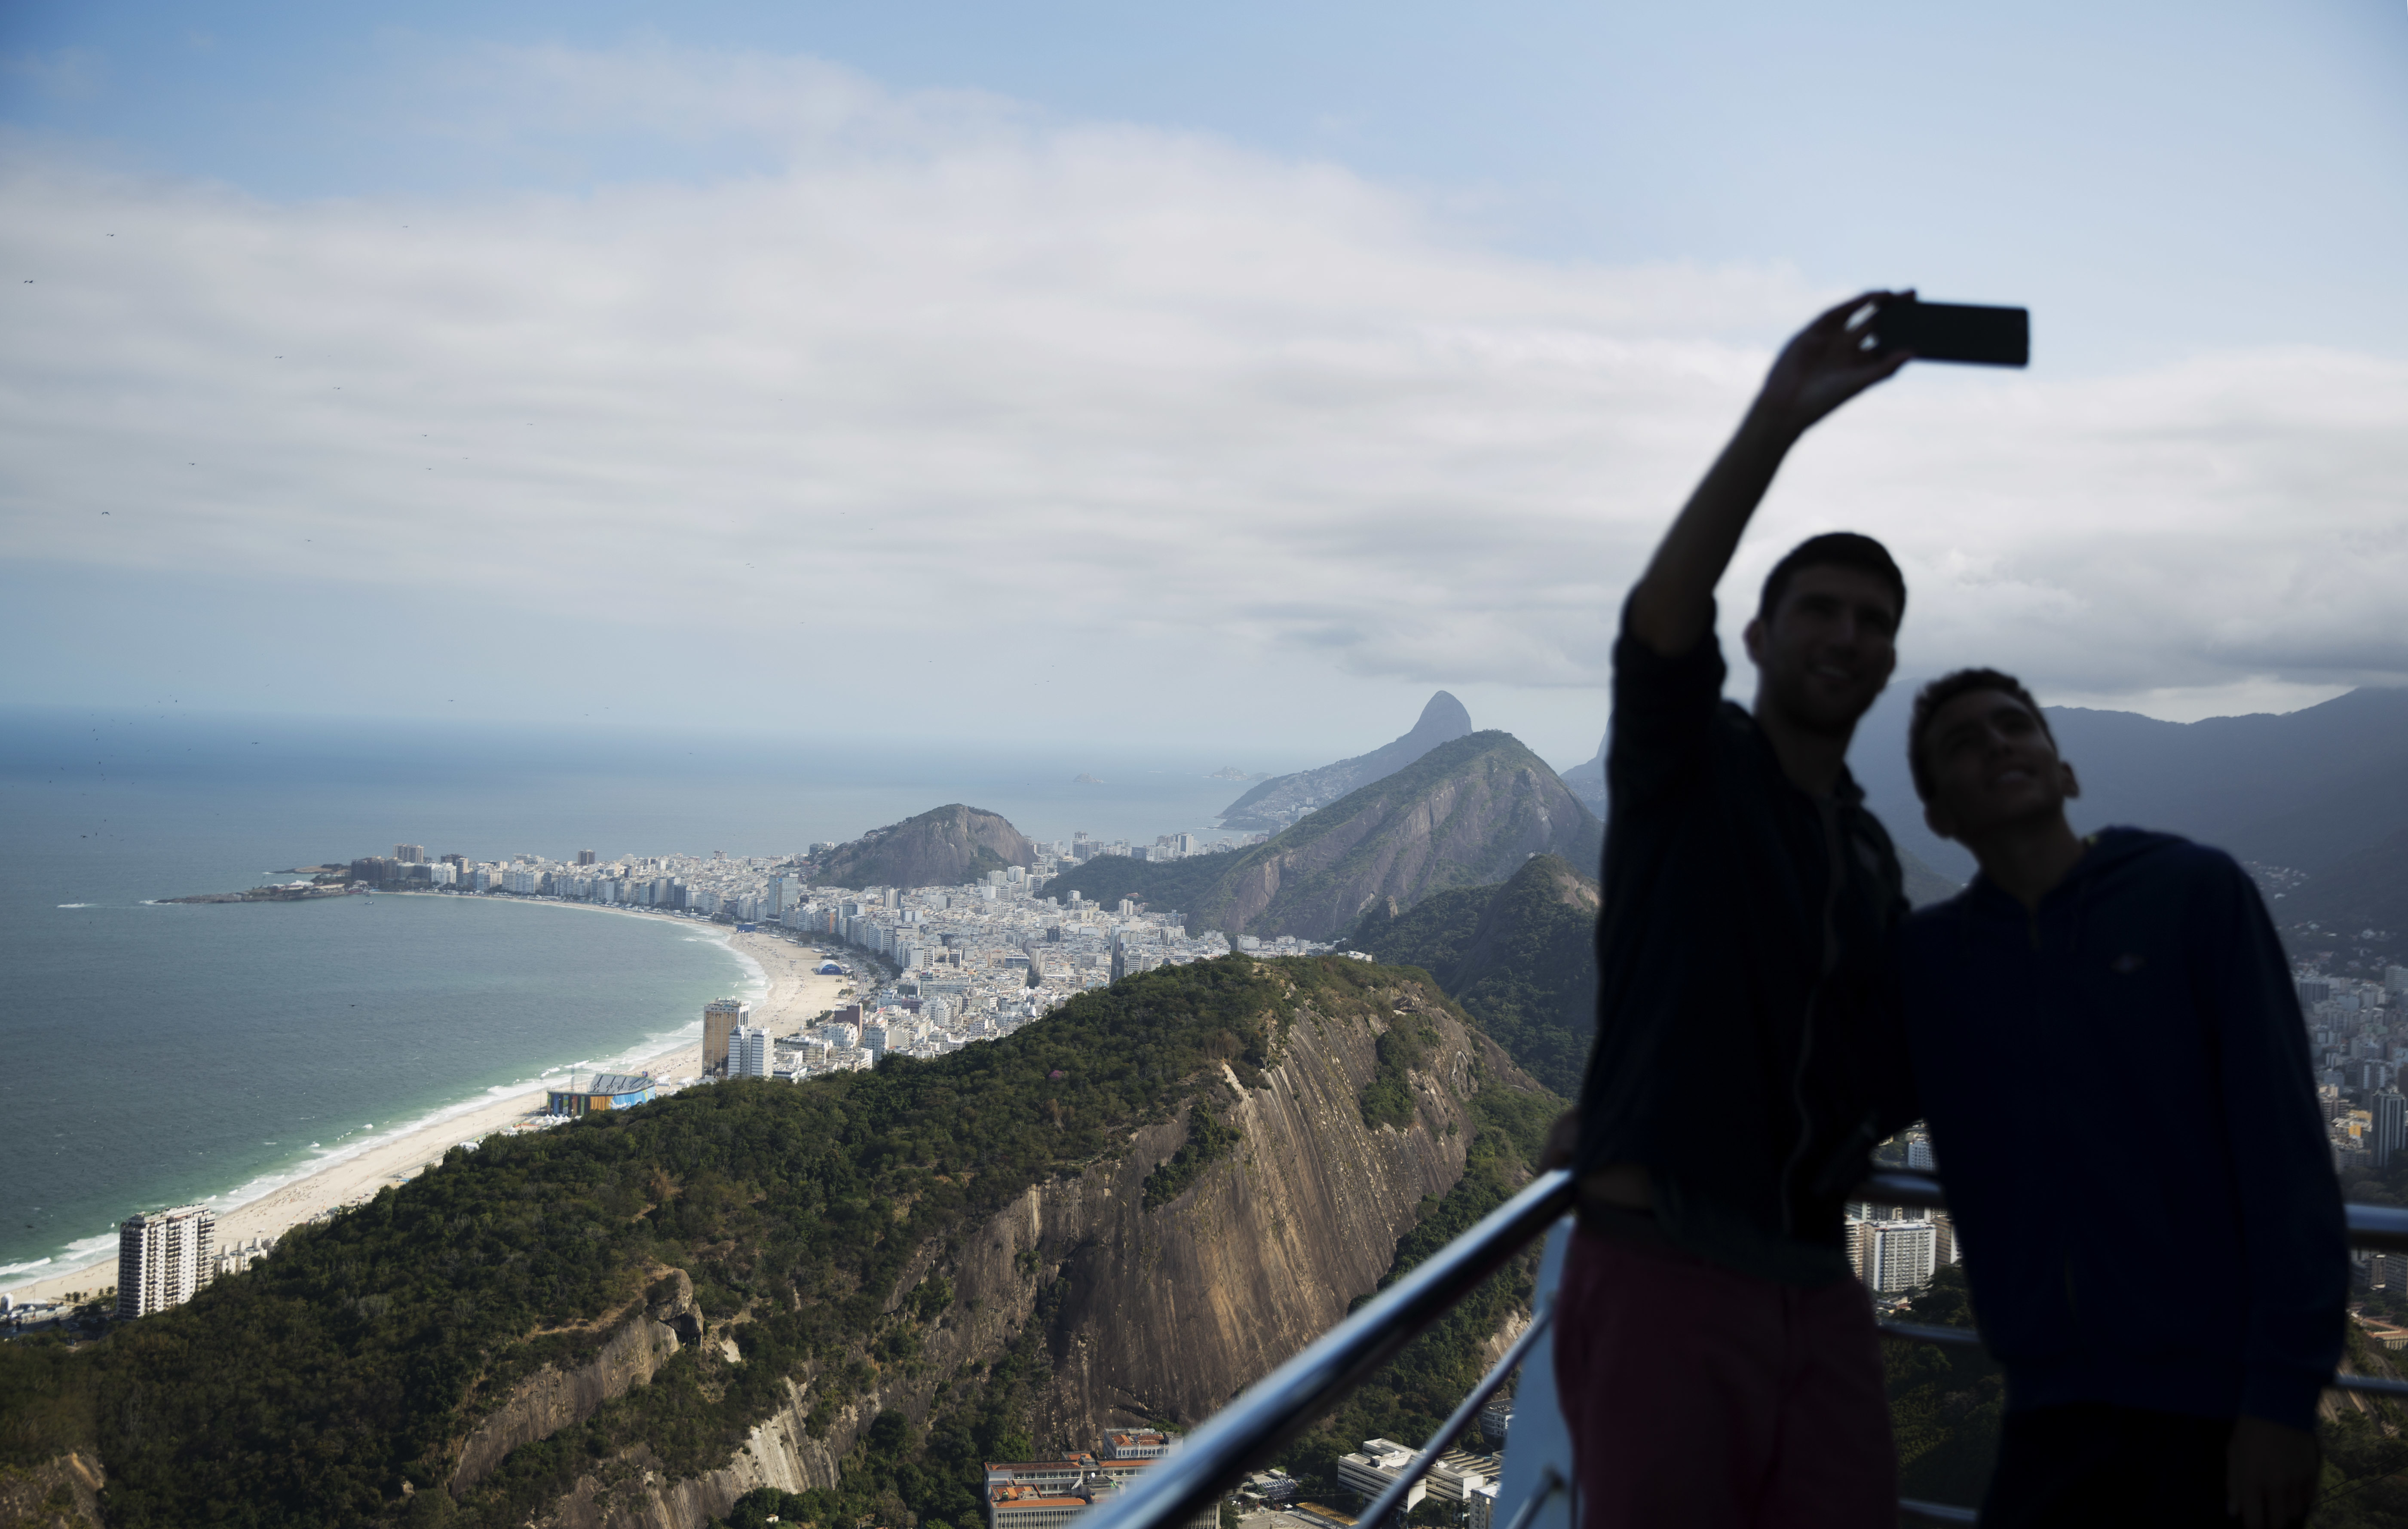 Copacabana beach, left, stands in the background as visitors take photos from atop Sugarloaf Mountain ahead of the 2016 Summer Olympics in Rio de Janeiro, Brazil, Thursday, Aug. 4, 2016. (AP Photo/David Goldman)